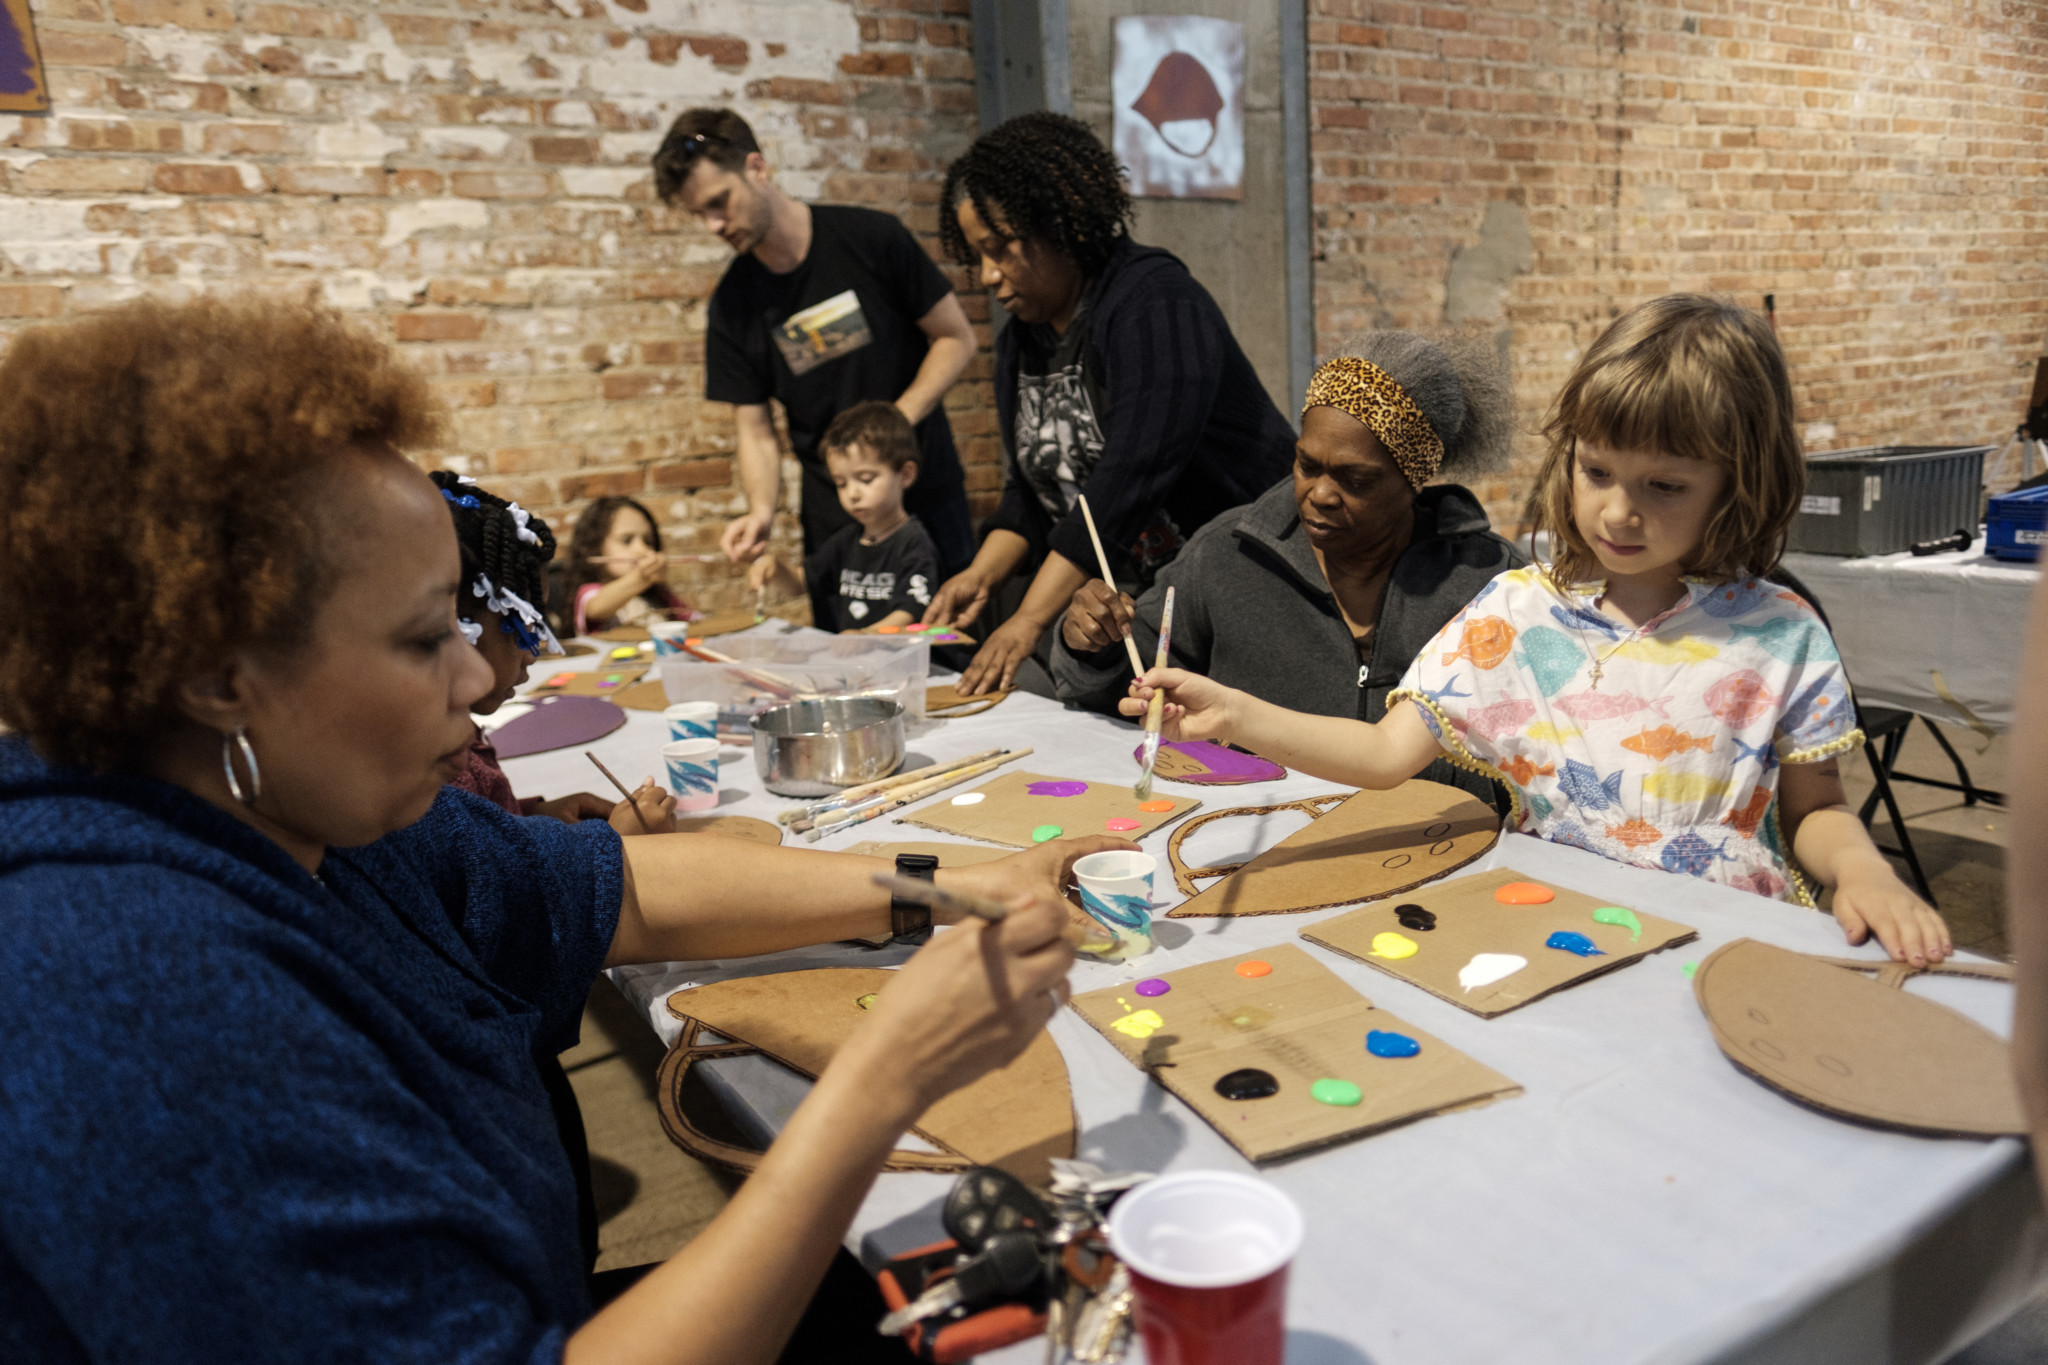 Guests painting cardboard bicycle helmets, one of several activities that took place after food and live performances (J. Michael Eugenio)